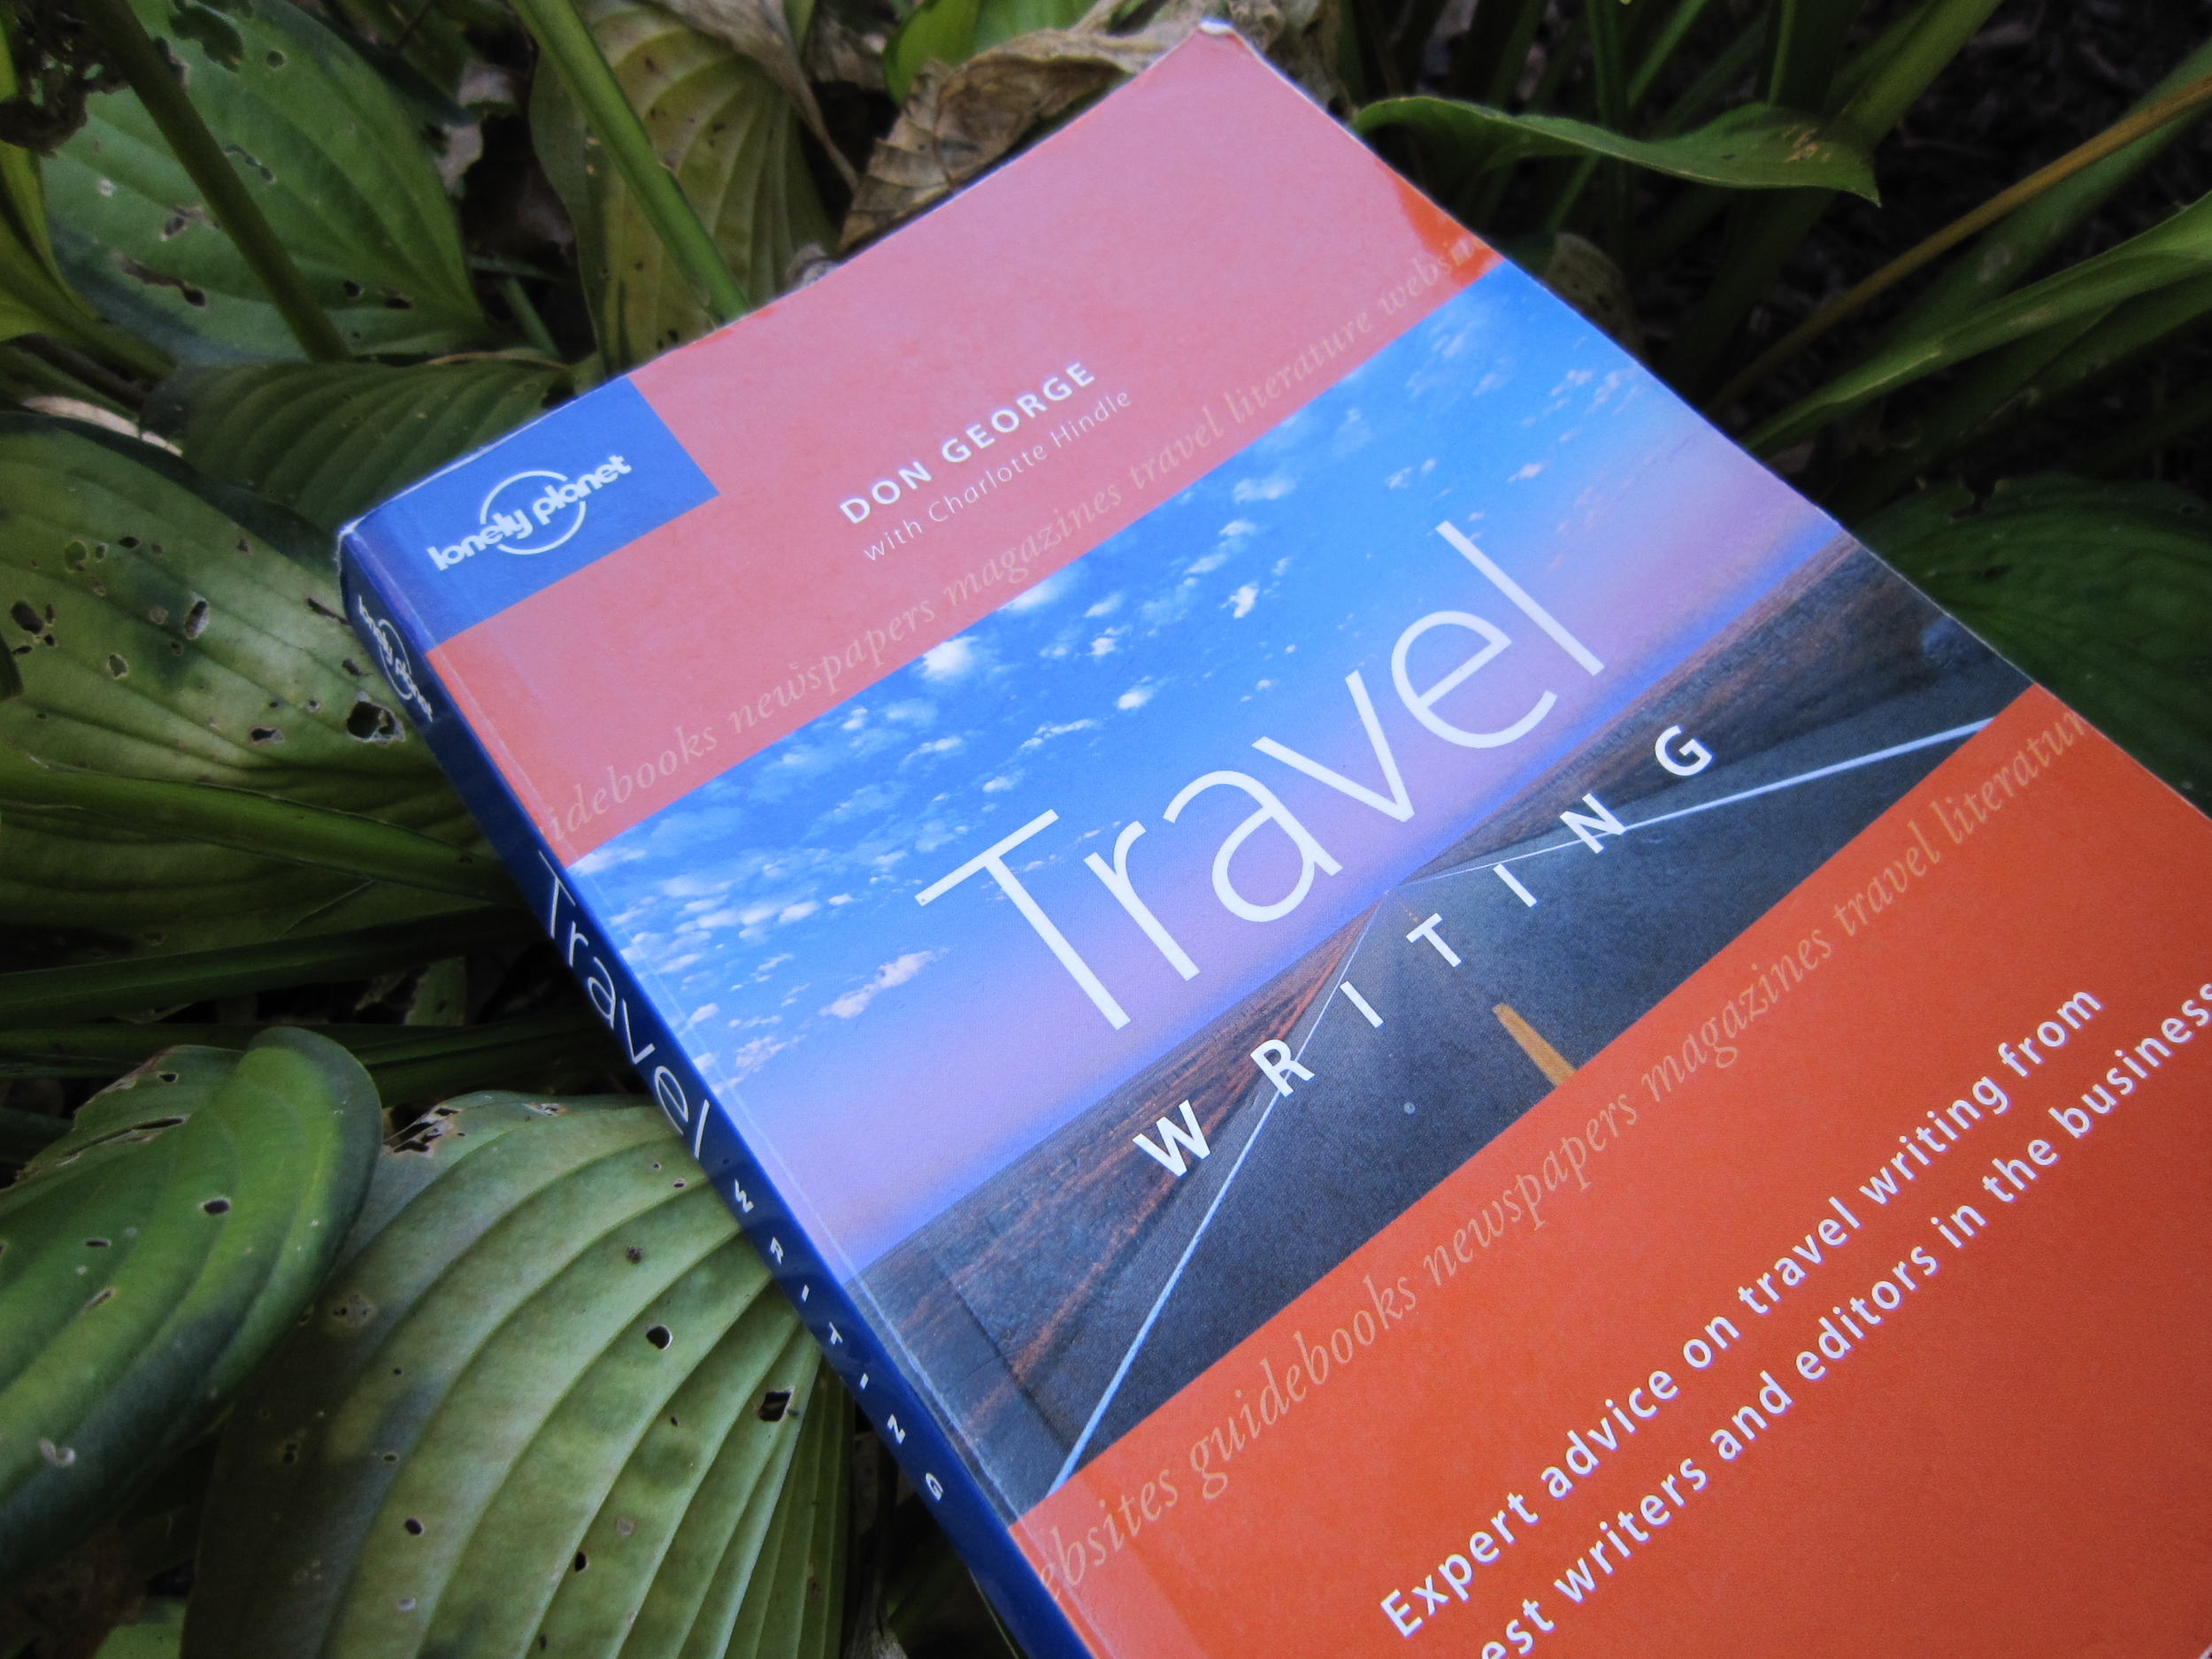 Travel Writing by Lonely Planet and Don George